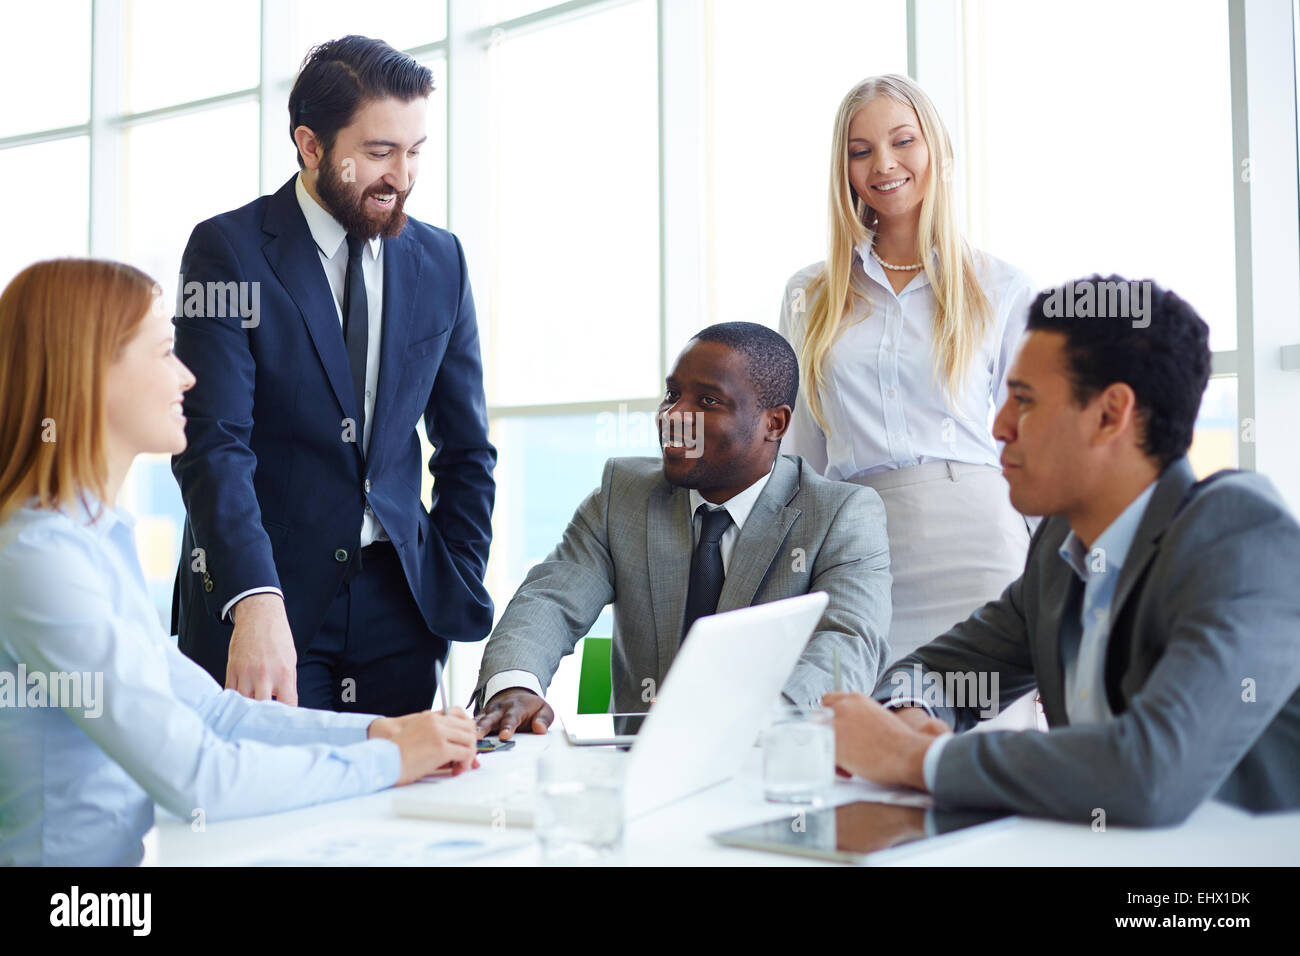 Group of business people gathering and communicating - Stock Image